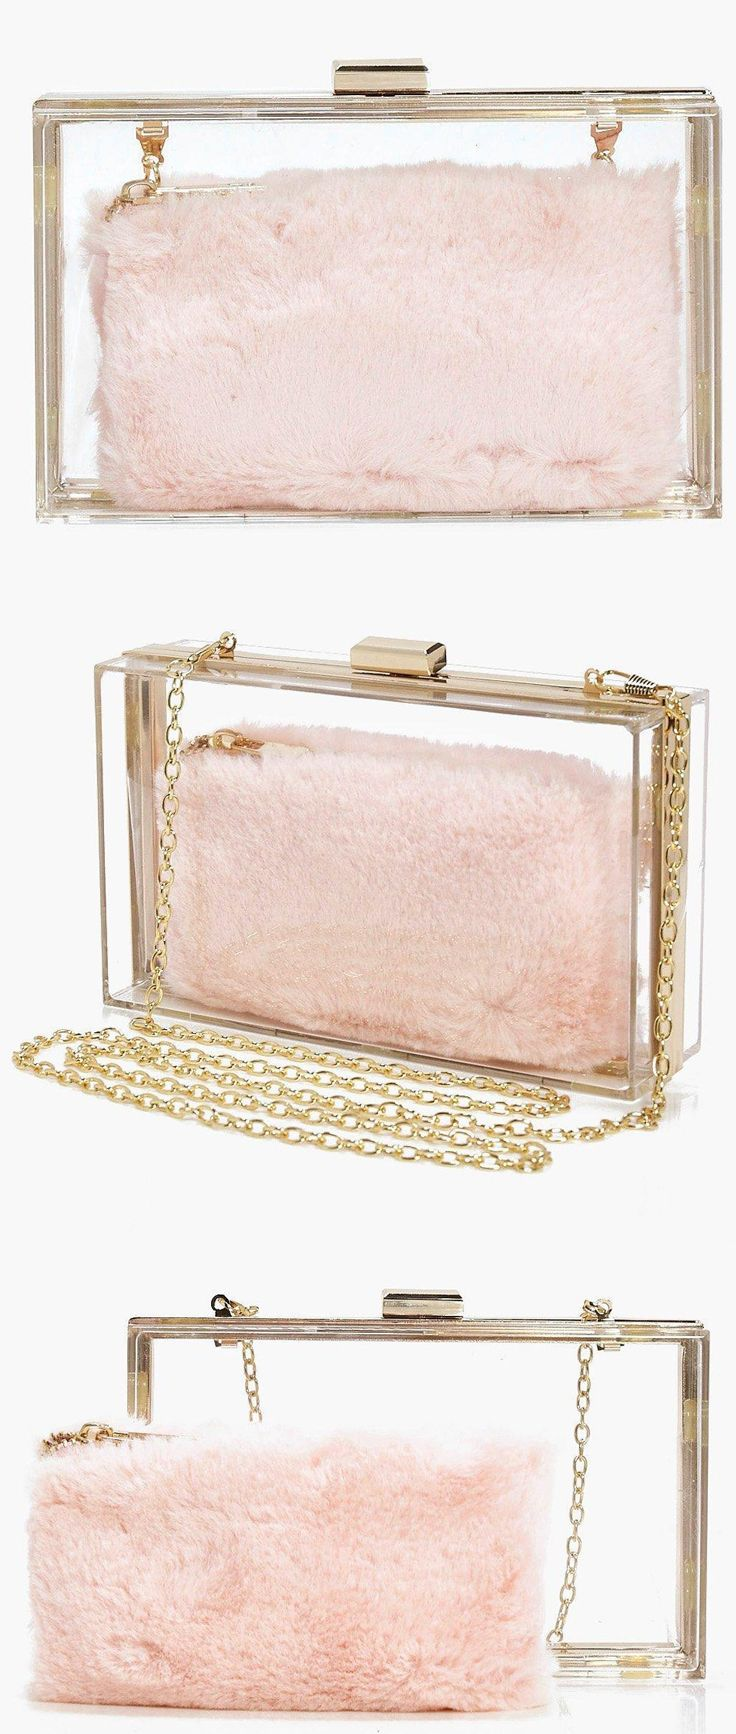 bf5c7caa2d38 Boohoo Womens Anya Clear Faux Fur Purse Clutch Bag in Pink. TWO BAGS in one